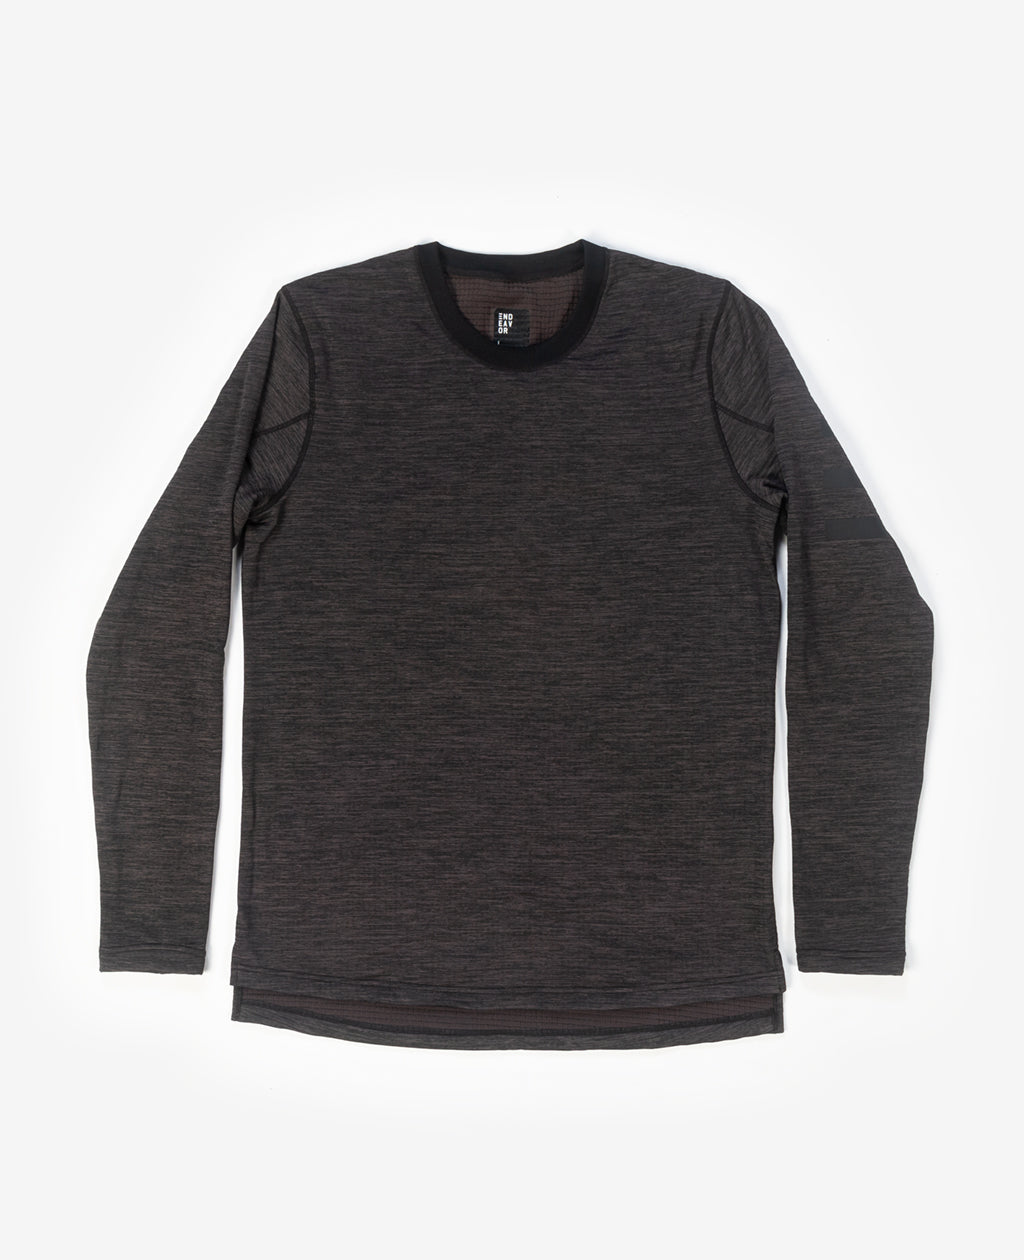 Endeavor Surplus Thermal Grid Top